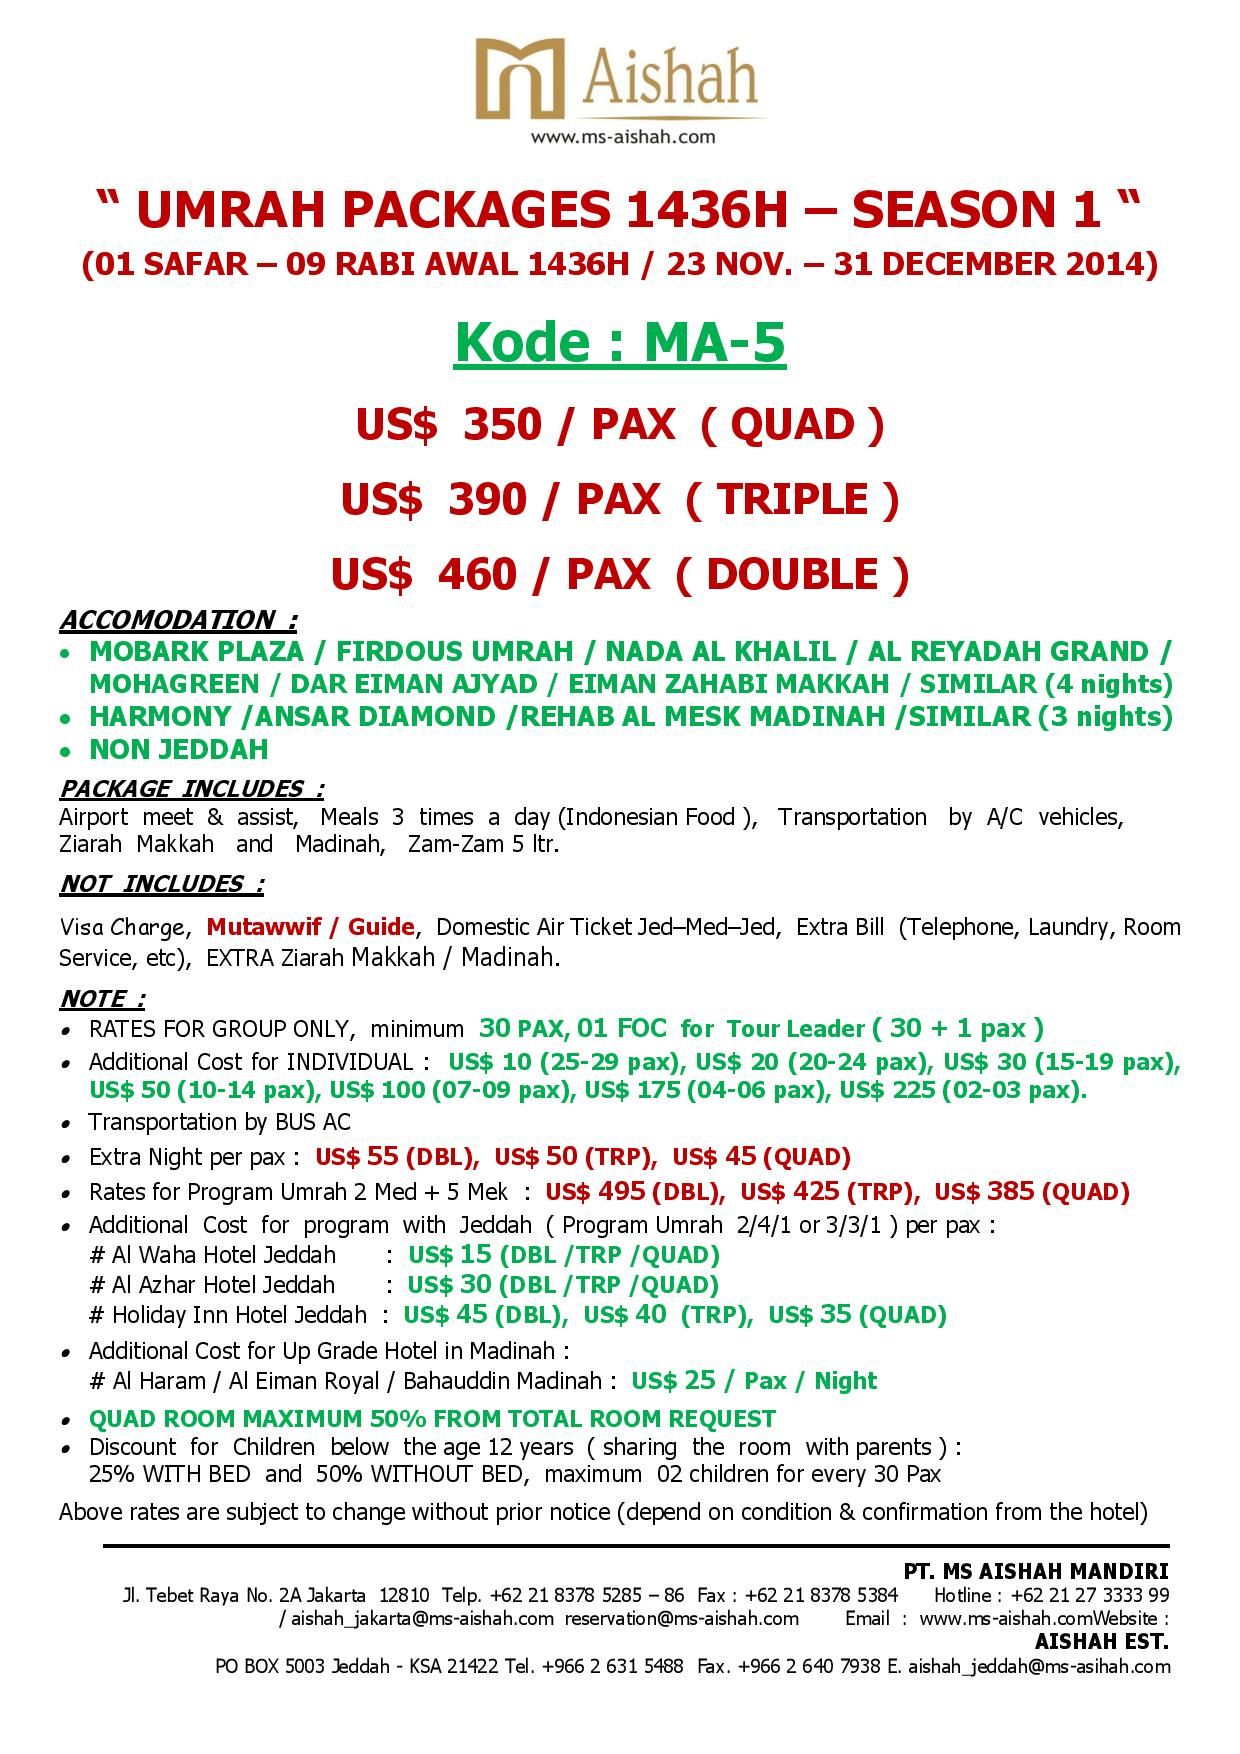 SPECIAL OFFER UMRAH 1436H SEASON 1 - 23 NOVEMBER - 31 DECEMBER 2014 - ma5